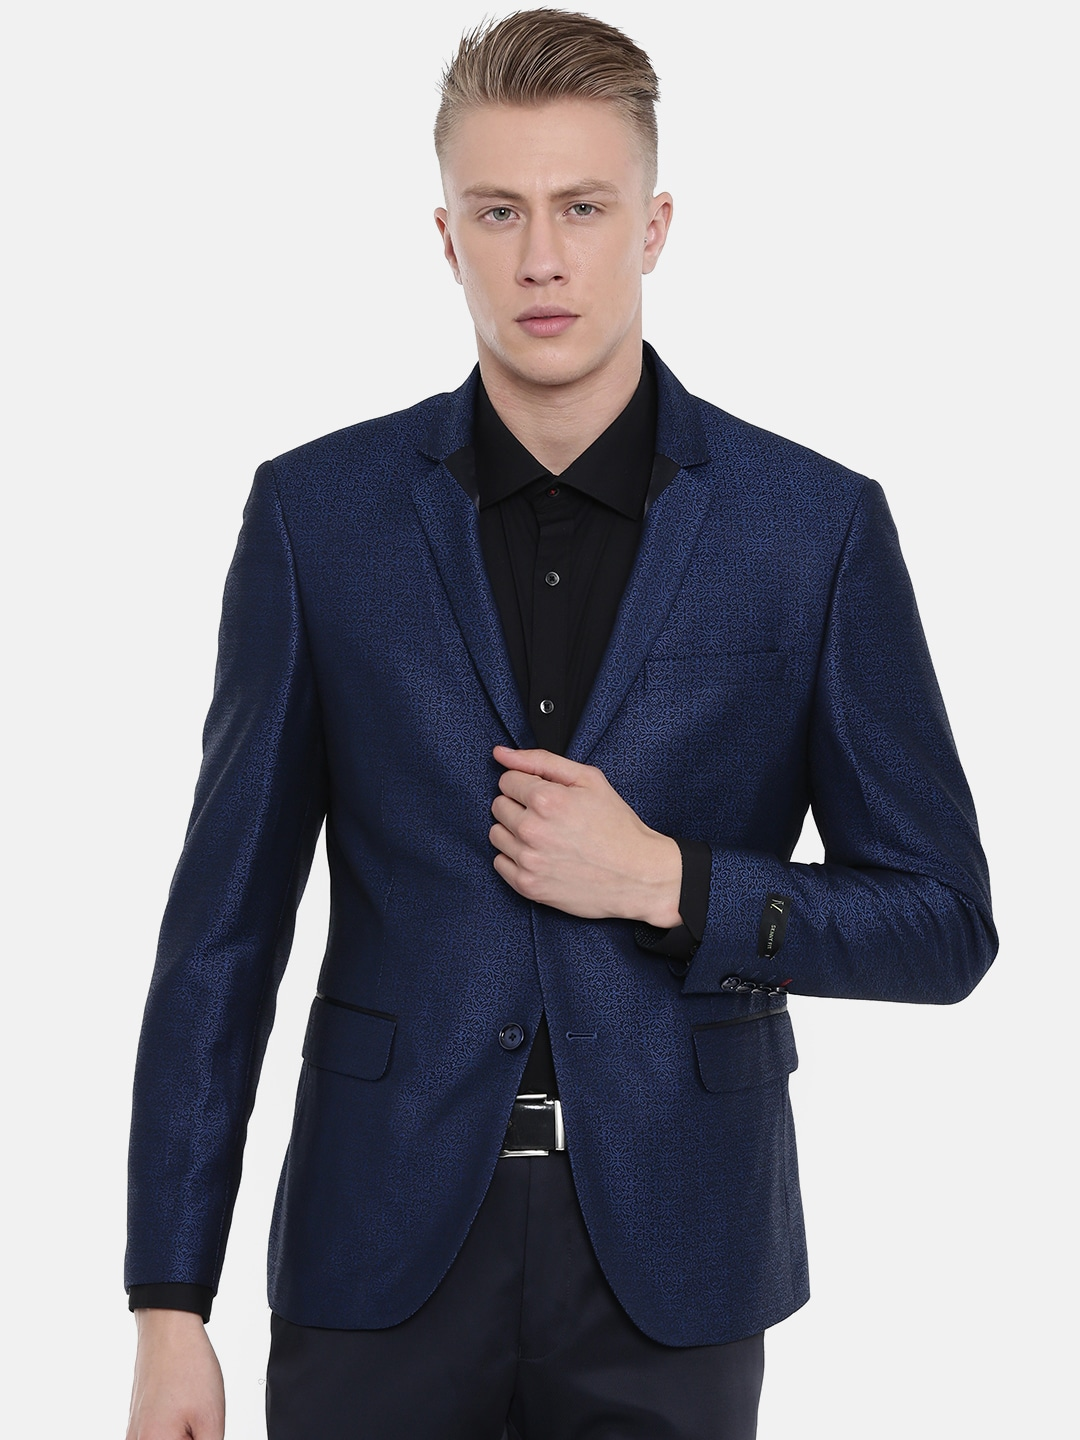 eab166e1a Blazers for Men - Buy Men Blazer Online in India at Best Price